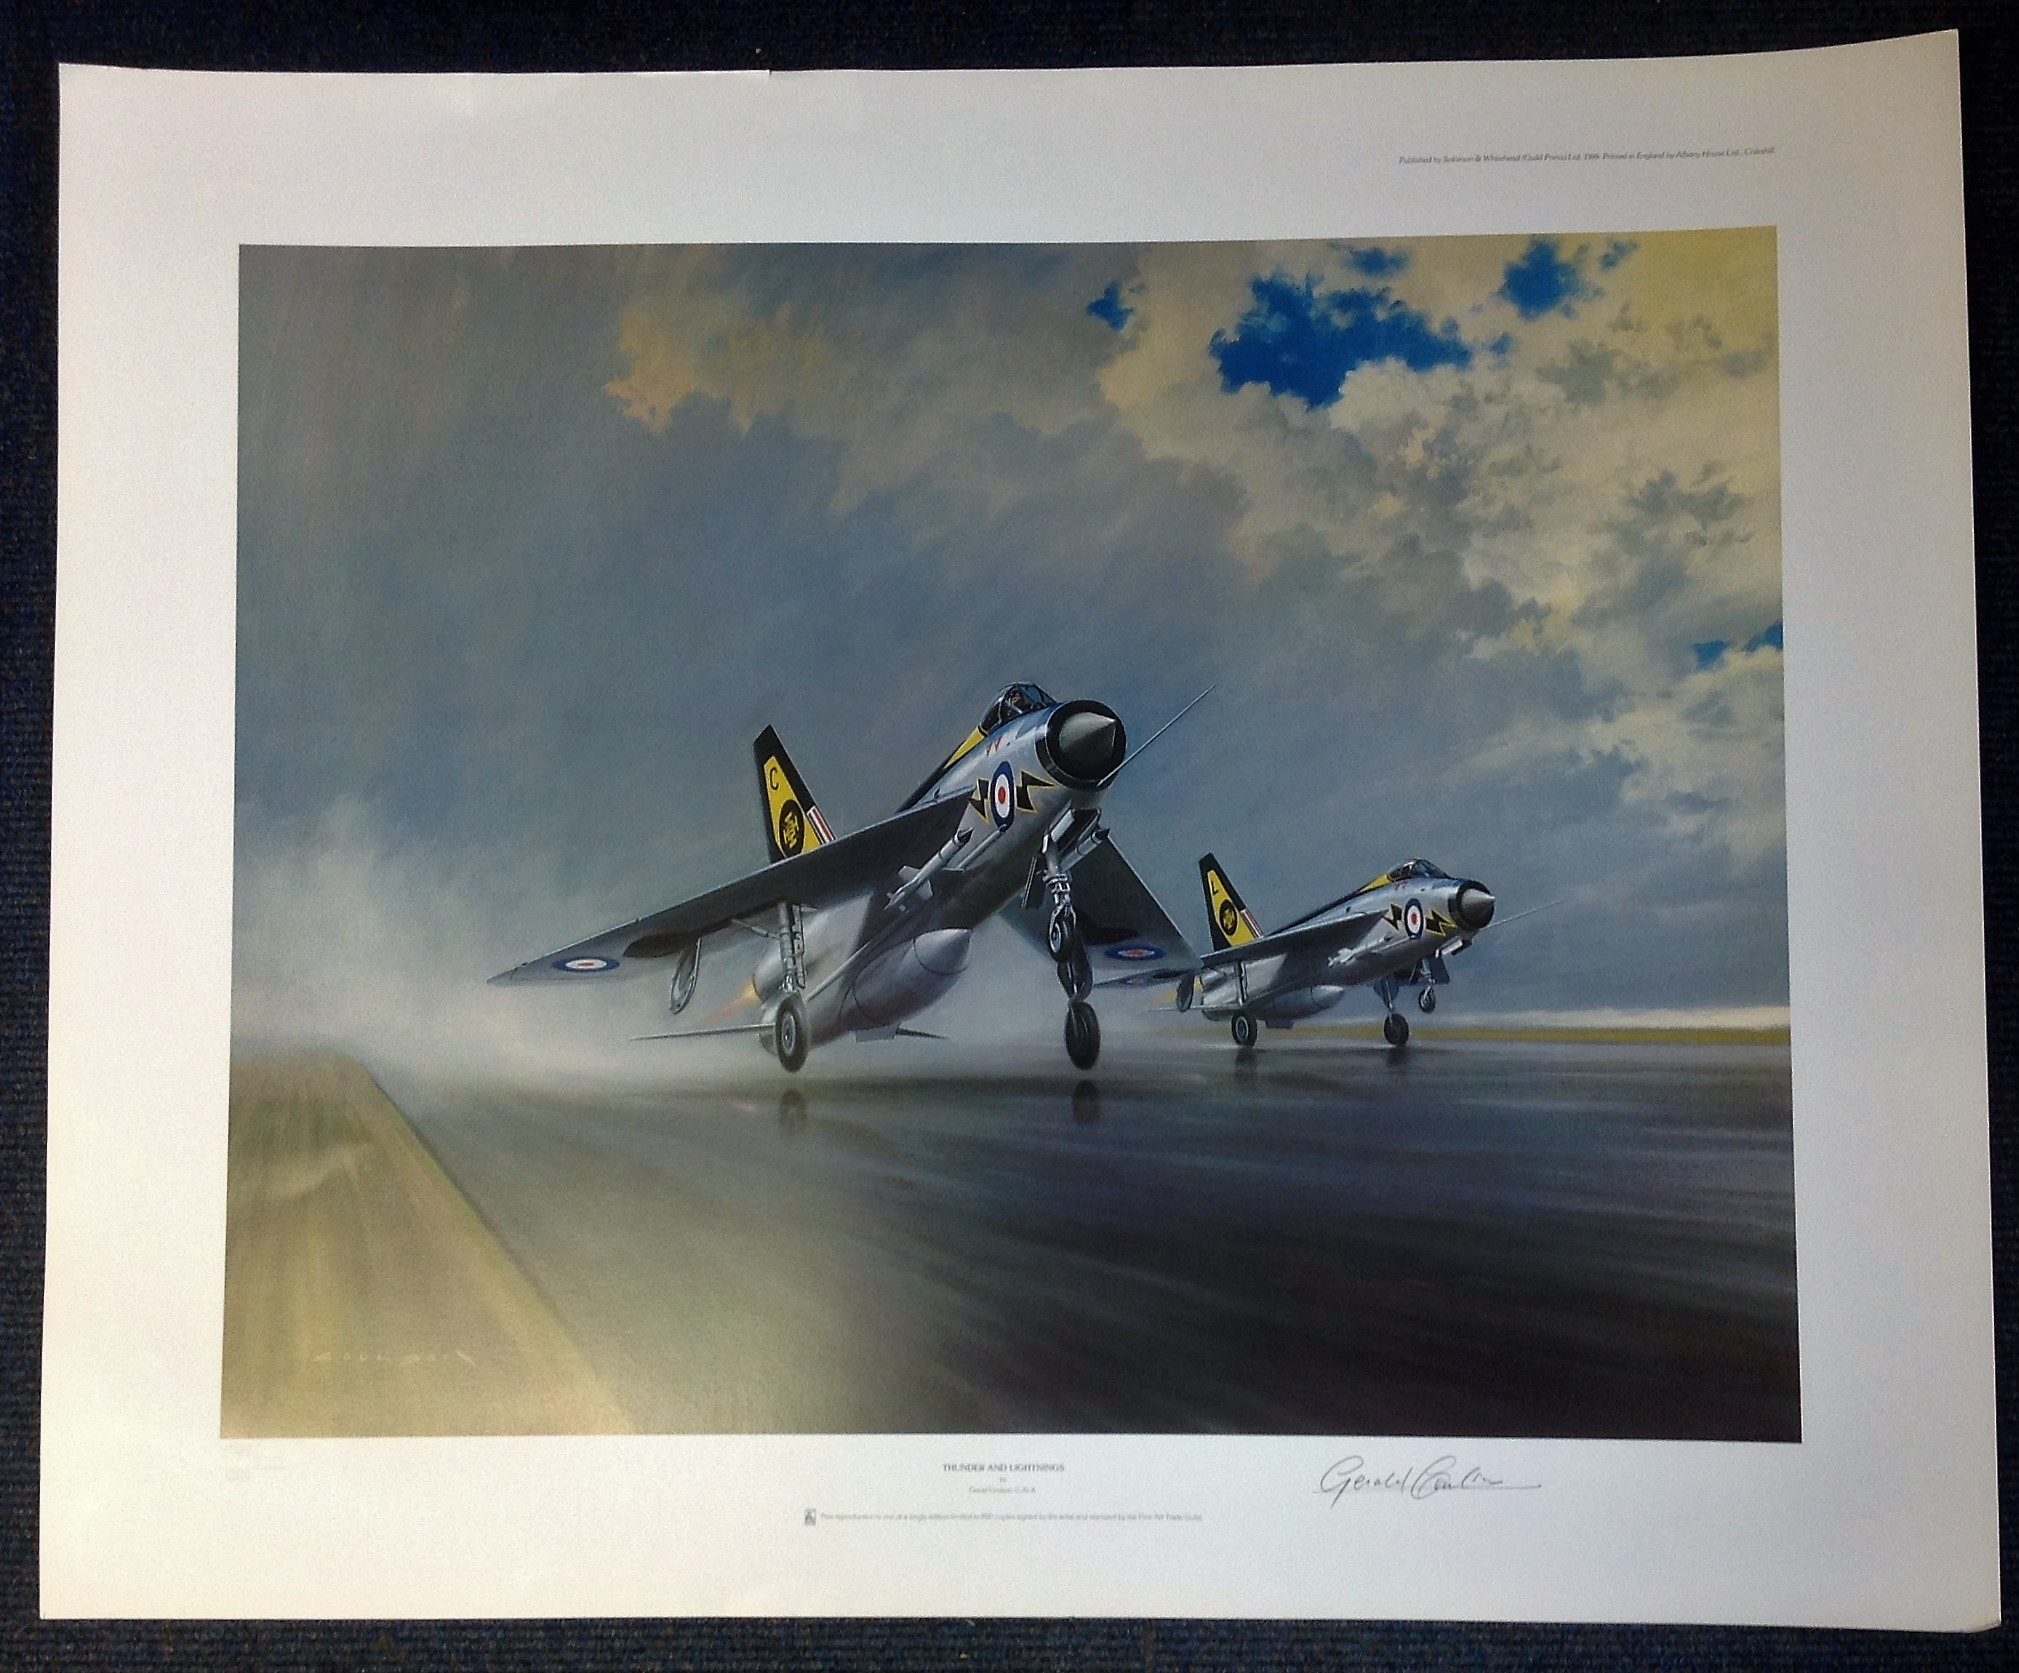 Aviation 27x32 print titled Thunder and Lightning signed in pencil by the artist Gerald Coulson.